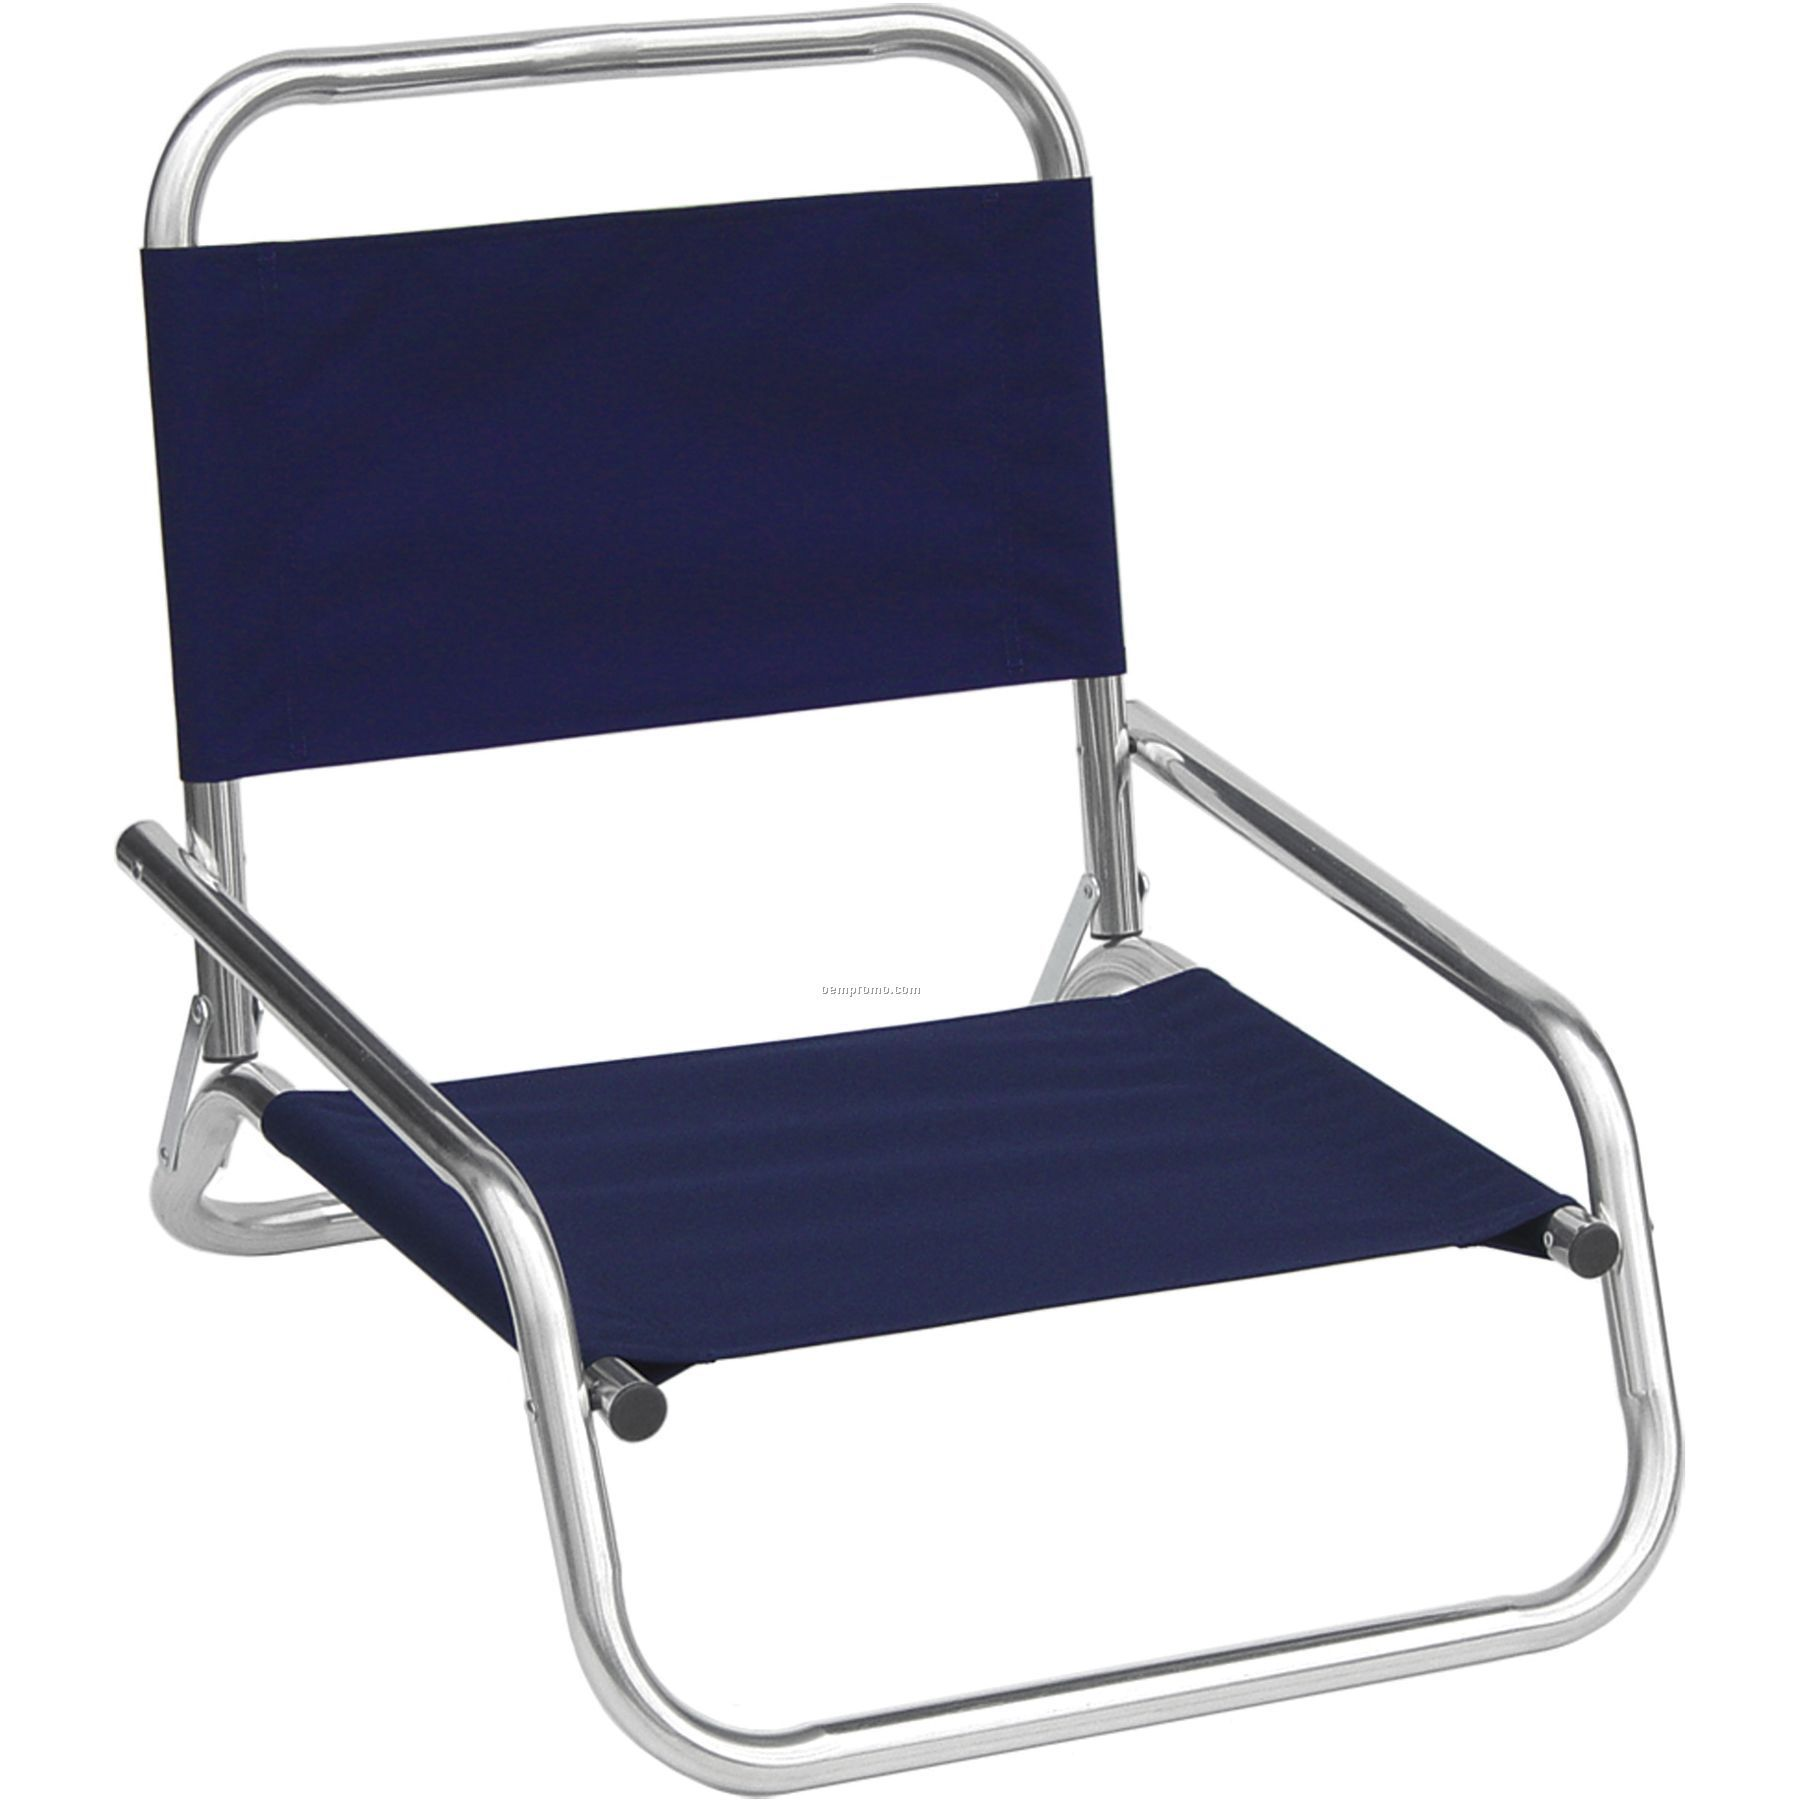 Low Folding Beach Chair Ideal Low Folding Beach Chair Low Price Folding Beach Chair